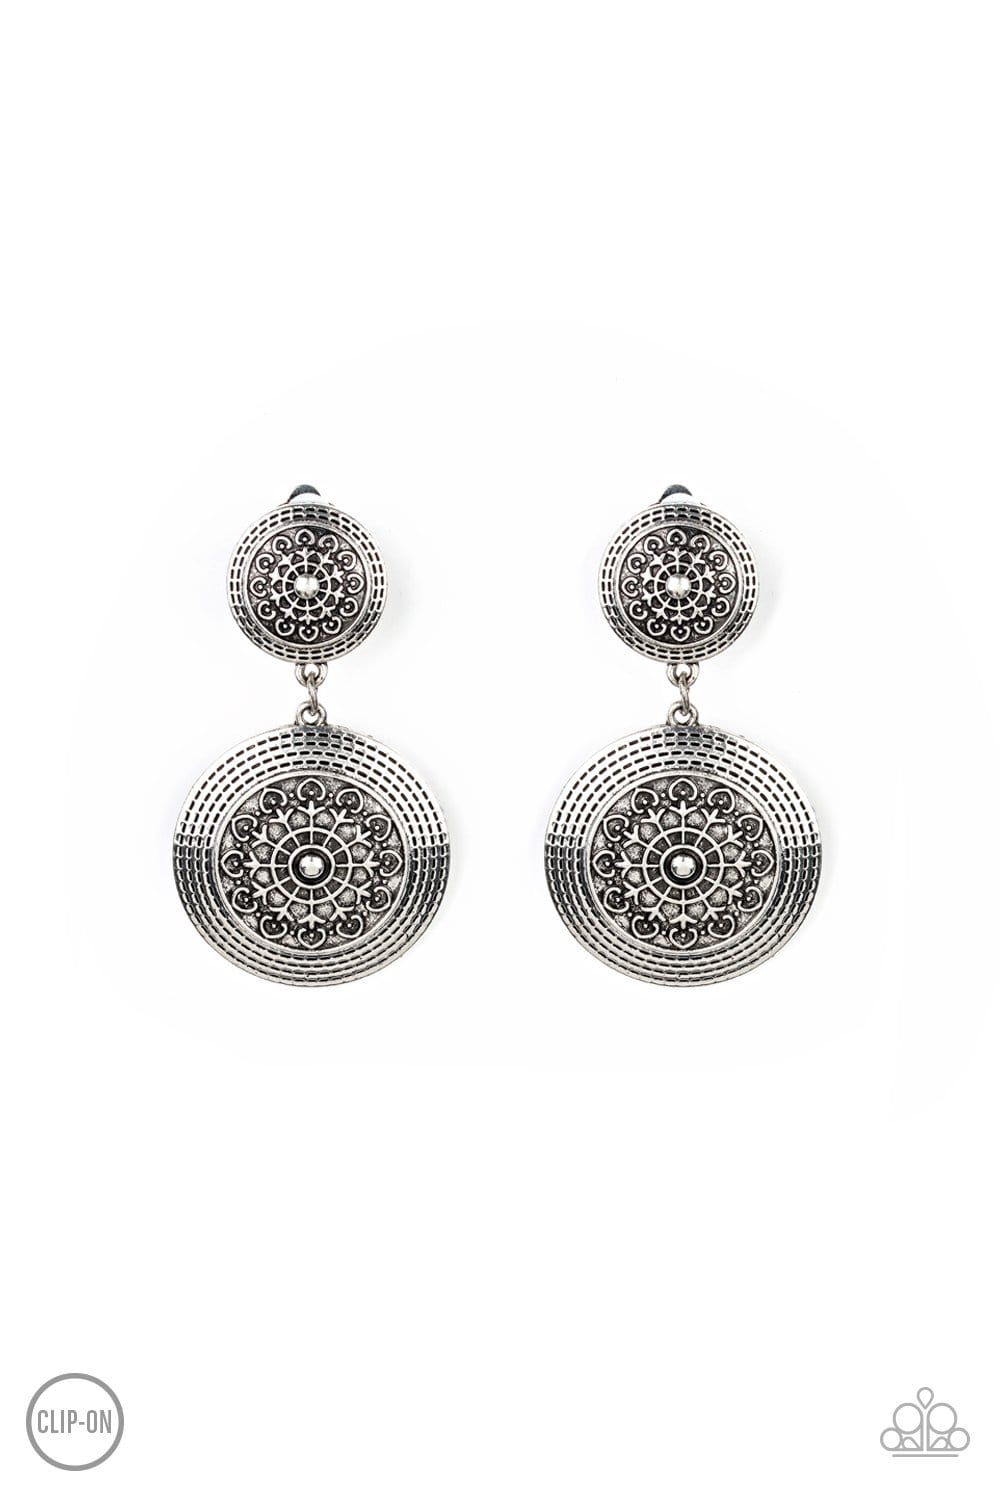 Magnificent Medallions - Silver: Paparazzi - Jewels N' Thingz Boutique